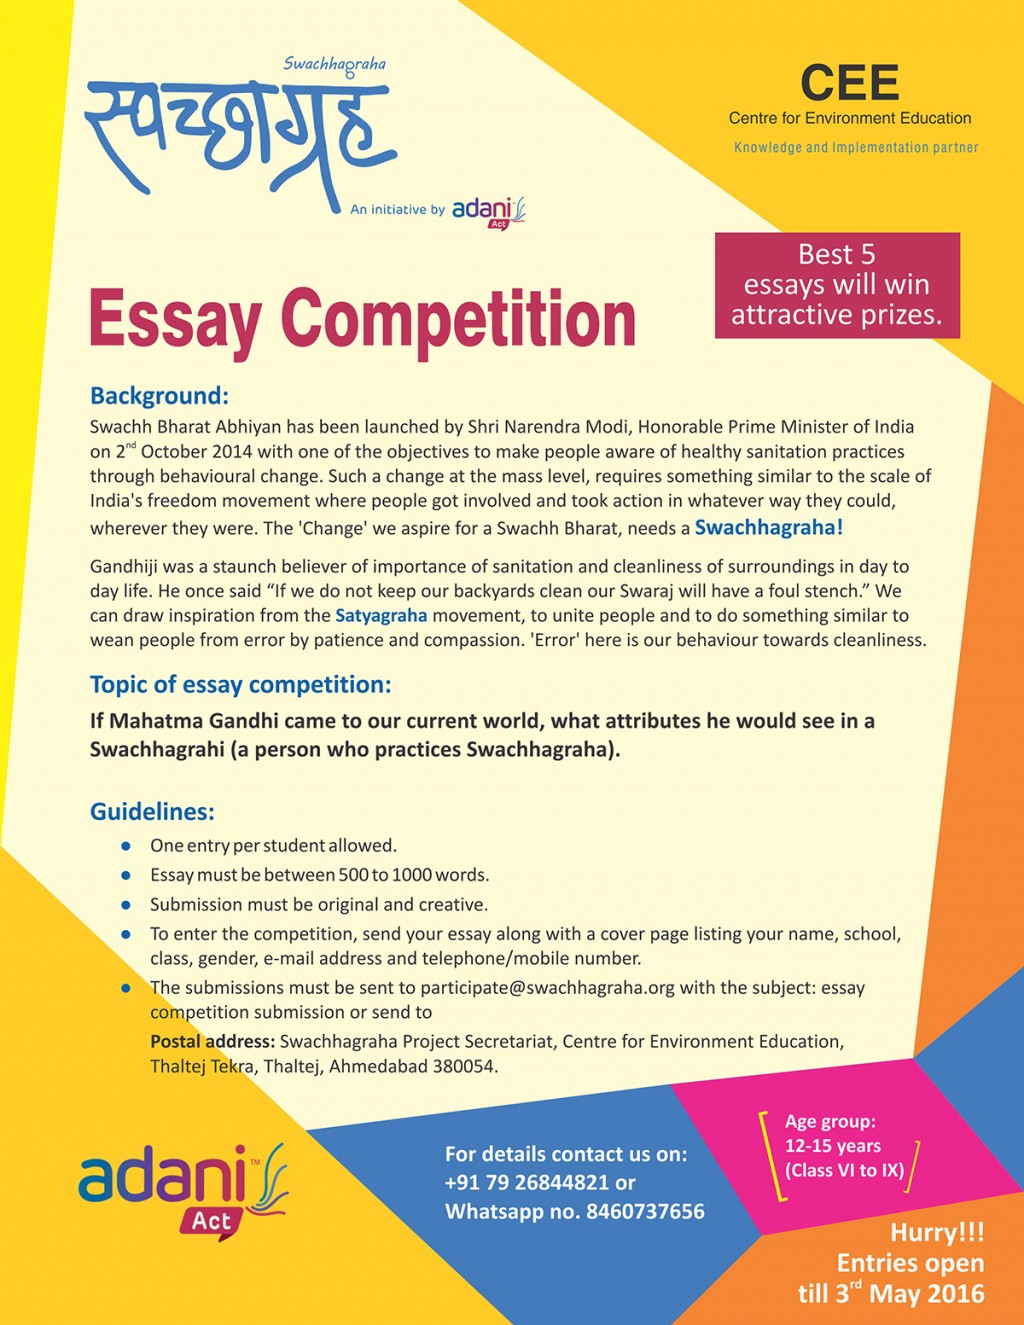 011 20180129171946essay20competition Essay About Cleanliness In School Phenomenal Campaign On Toilets And Its Surrounding Persuasive Large